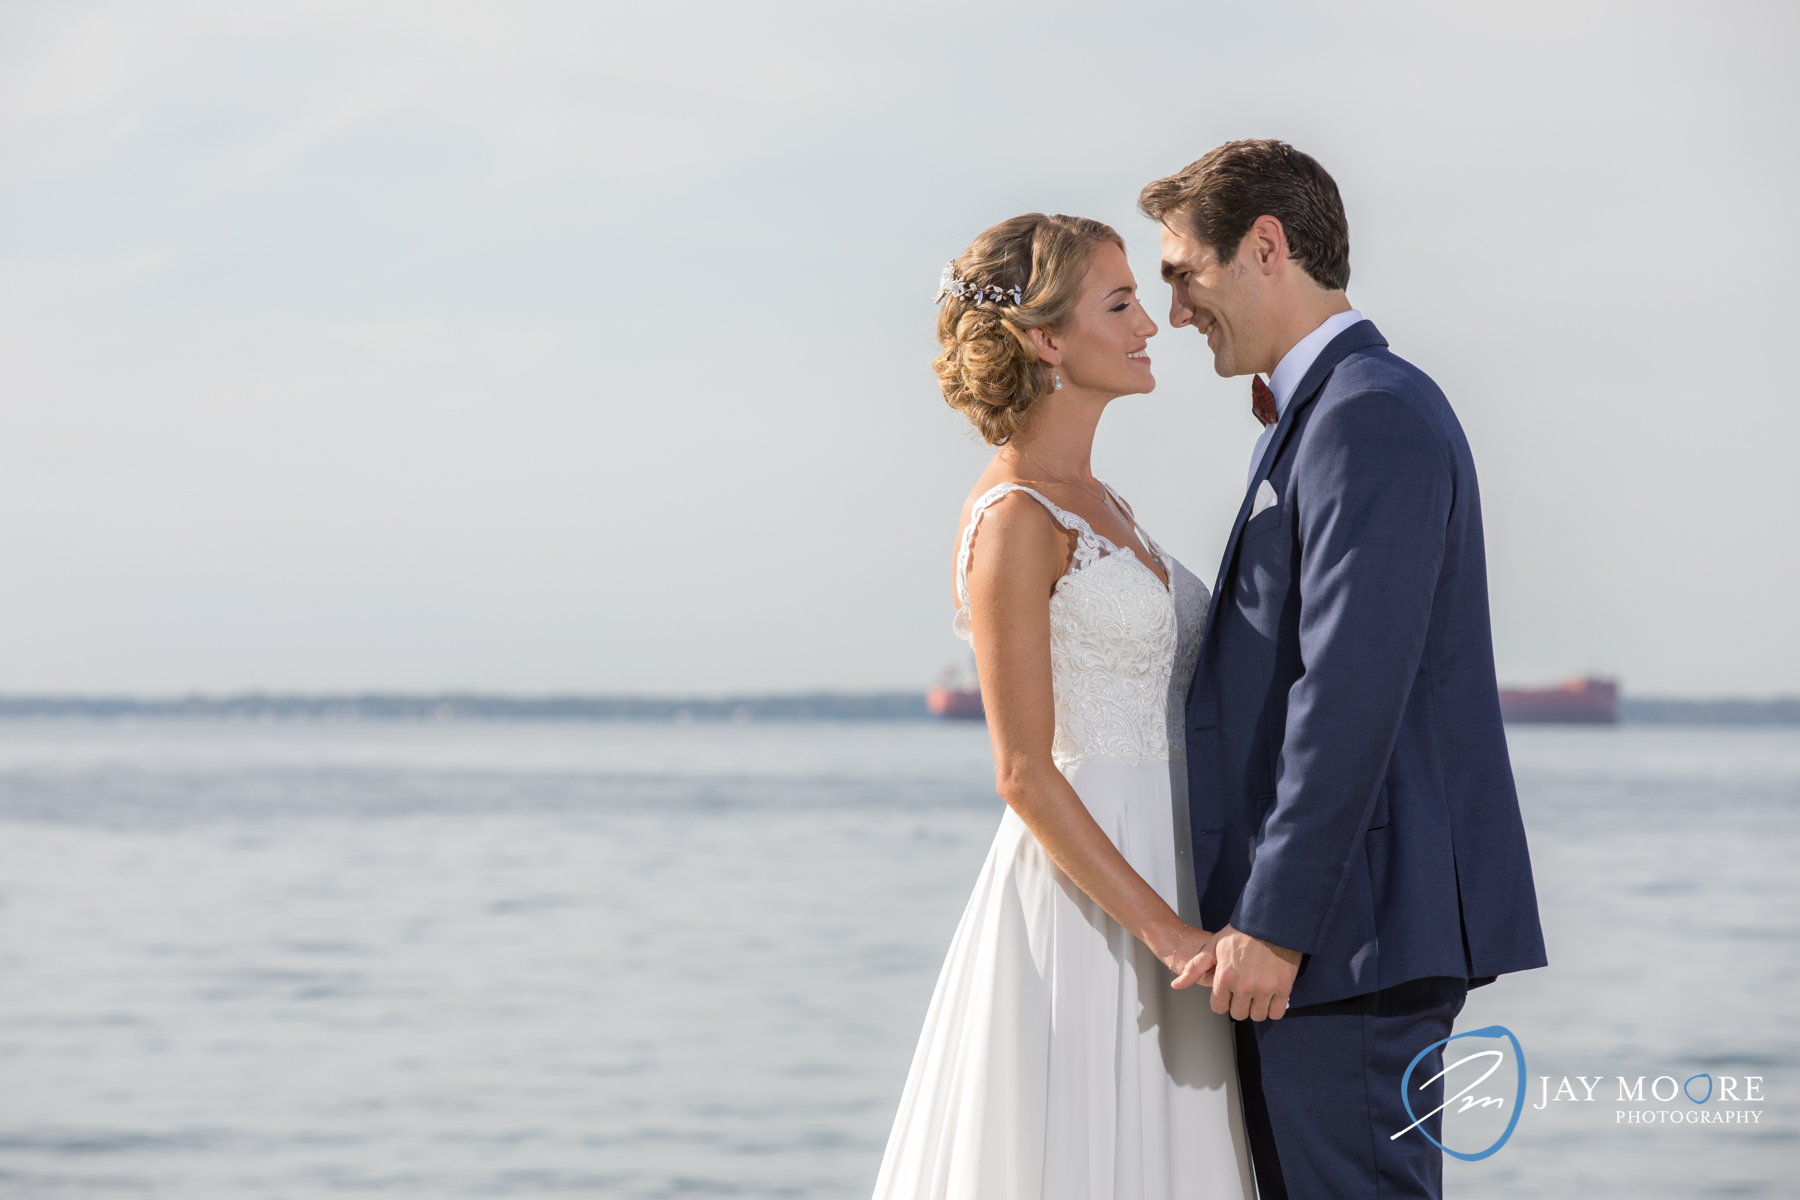 102117 MD Colleen McArdle + Matthew - Jay Moore Photography AF LS_0162.jpg